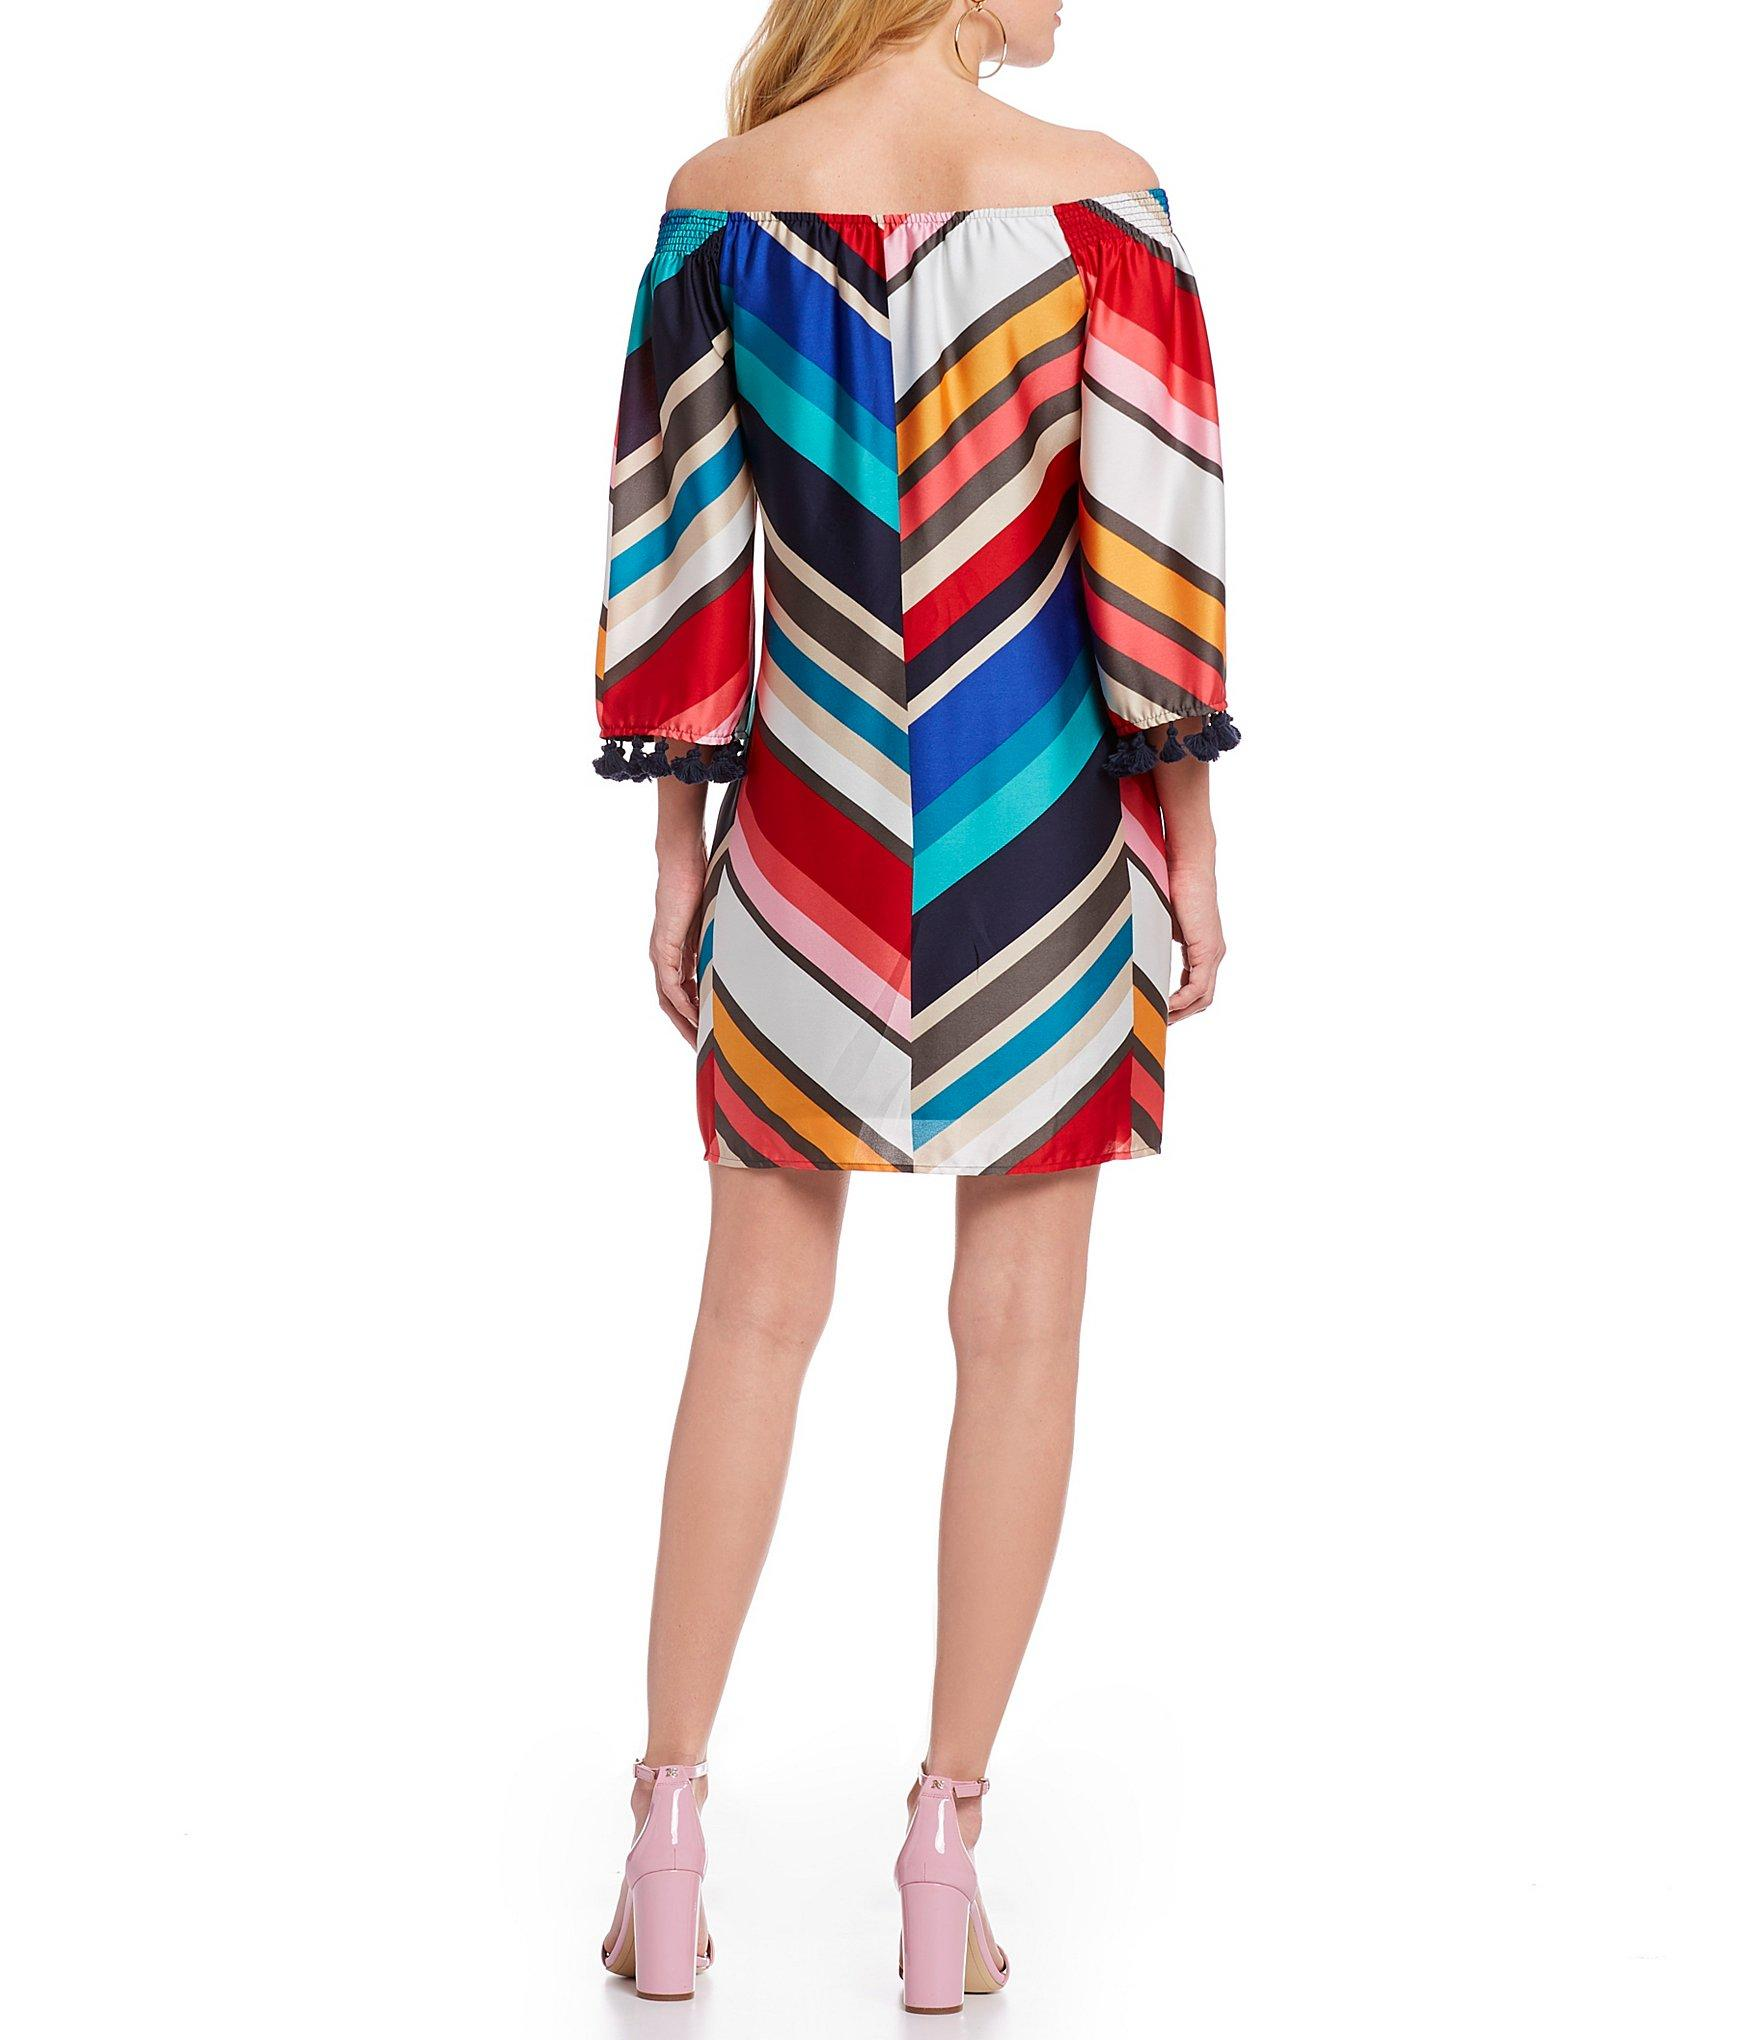 ad5f968bc35 Lyst - Trina Turk Amaris Off-the-shoulder Chevron 3/4 Bell Sleeve ...